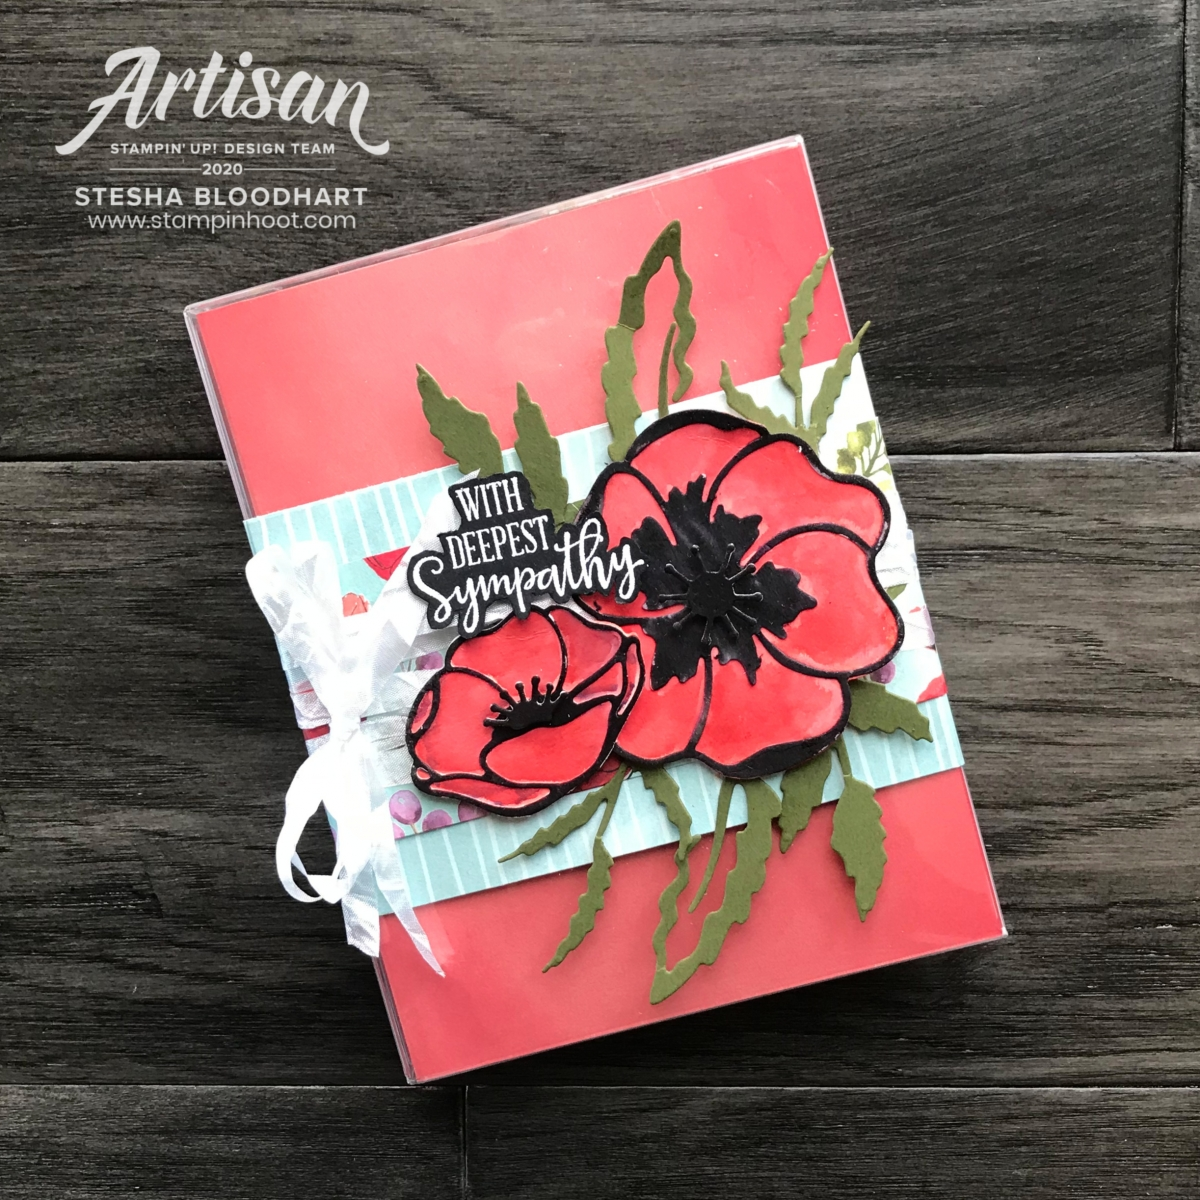 Stesha Bloodhart_February 2020_Artisan Design Team Blog Hop - Peaceful Poppies Suite by Stampin' Up!